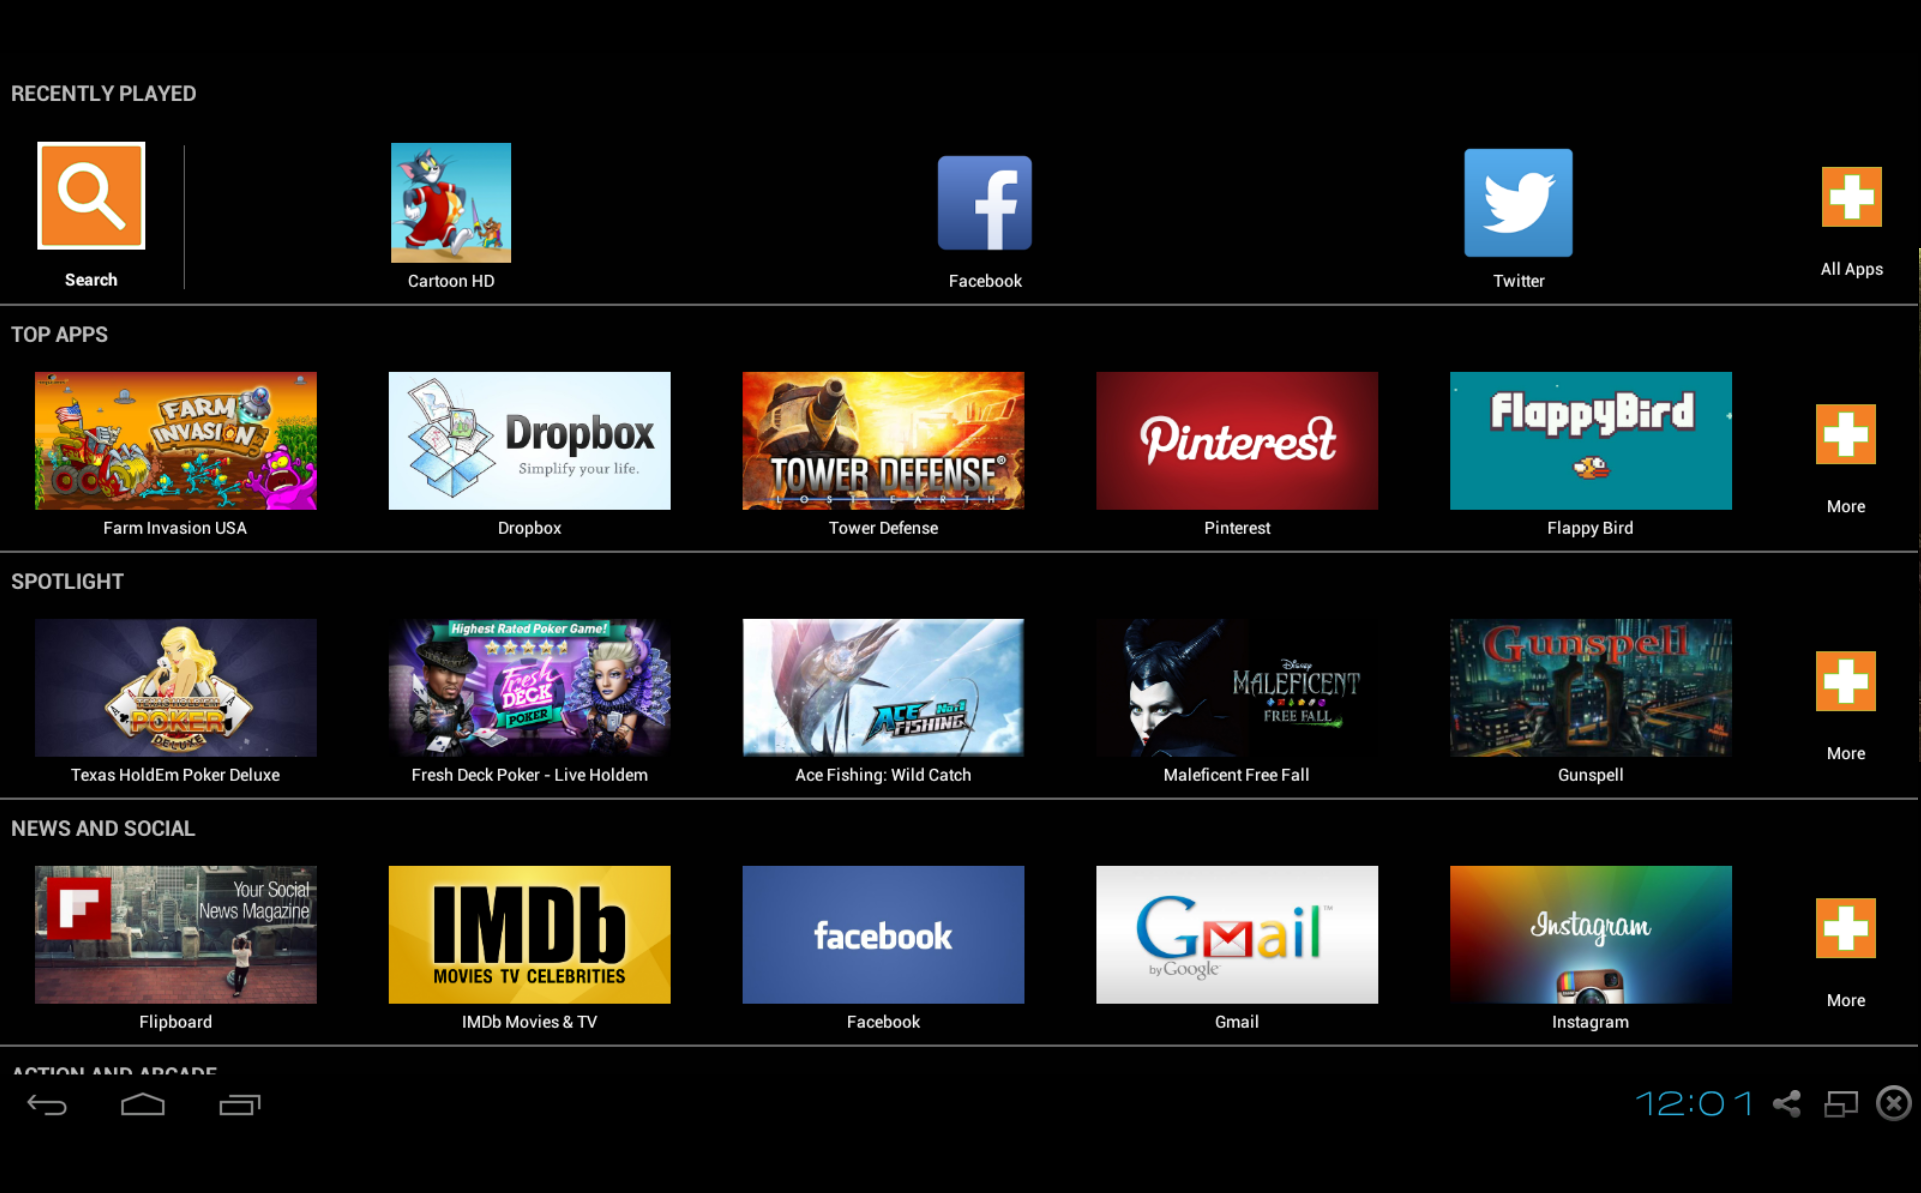 How To: Run The Cartoon HD App From Your PC w/ Bluestacks